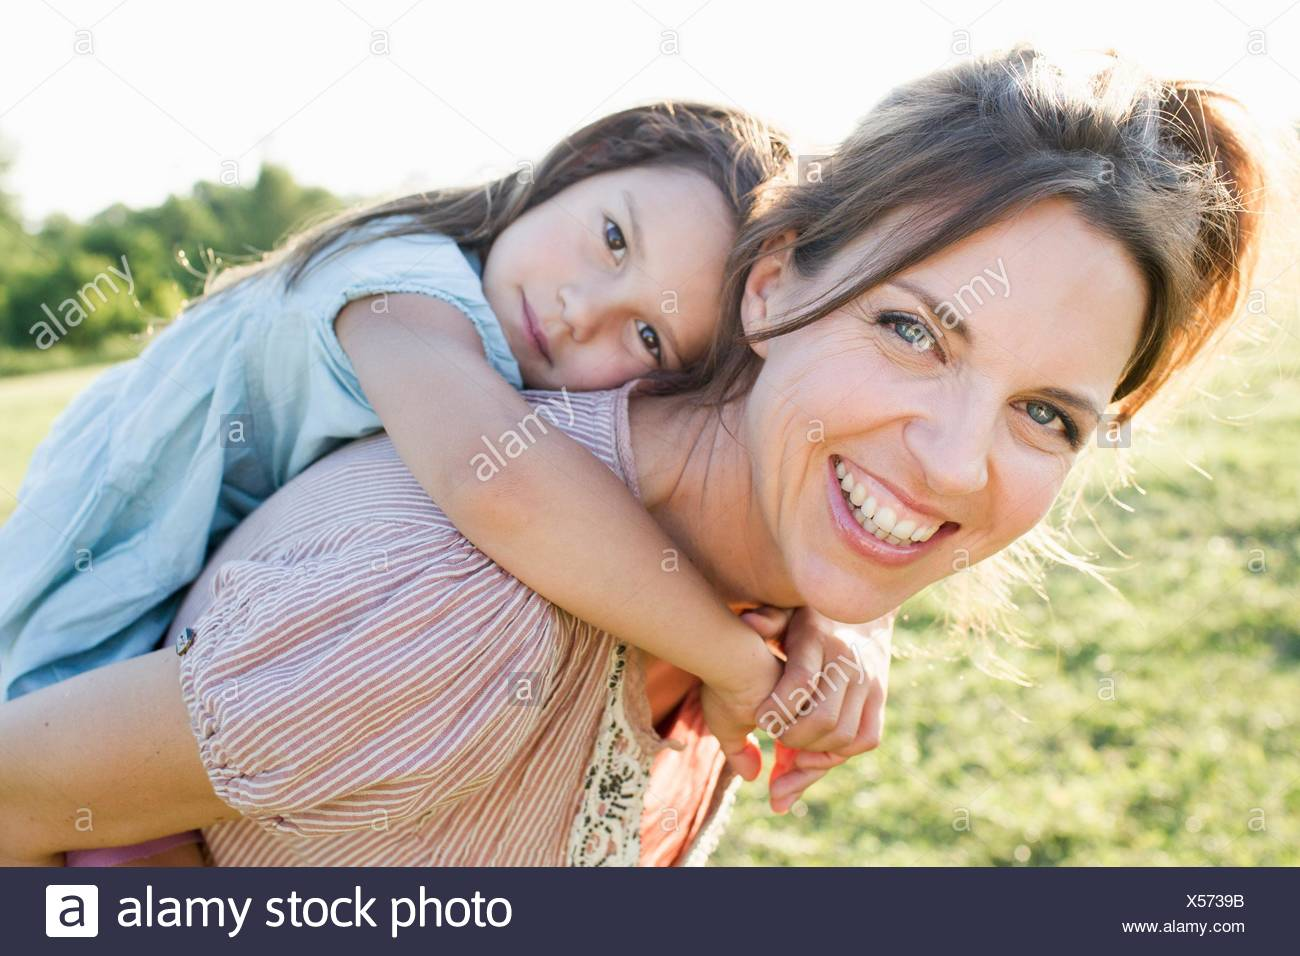 Young woman giving daughter piggy back ride in park Photo Stock